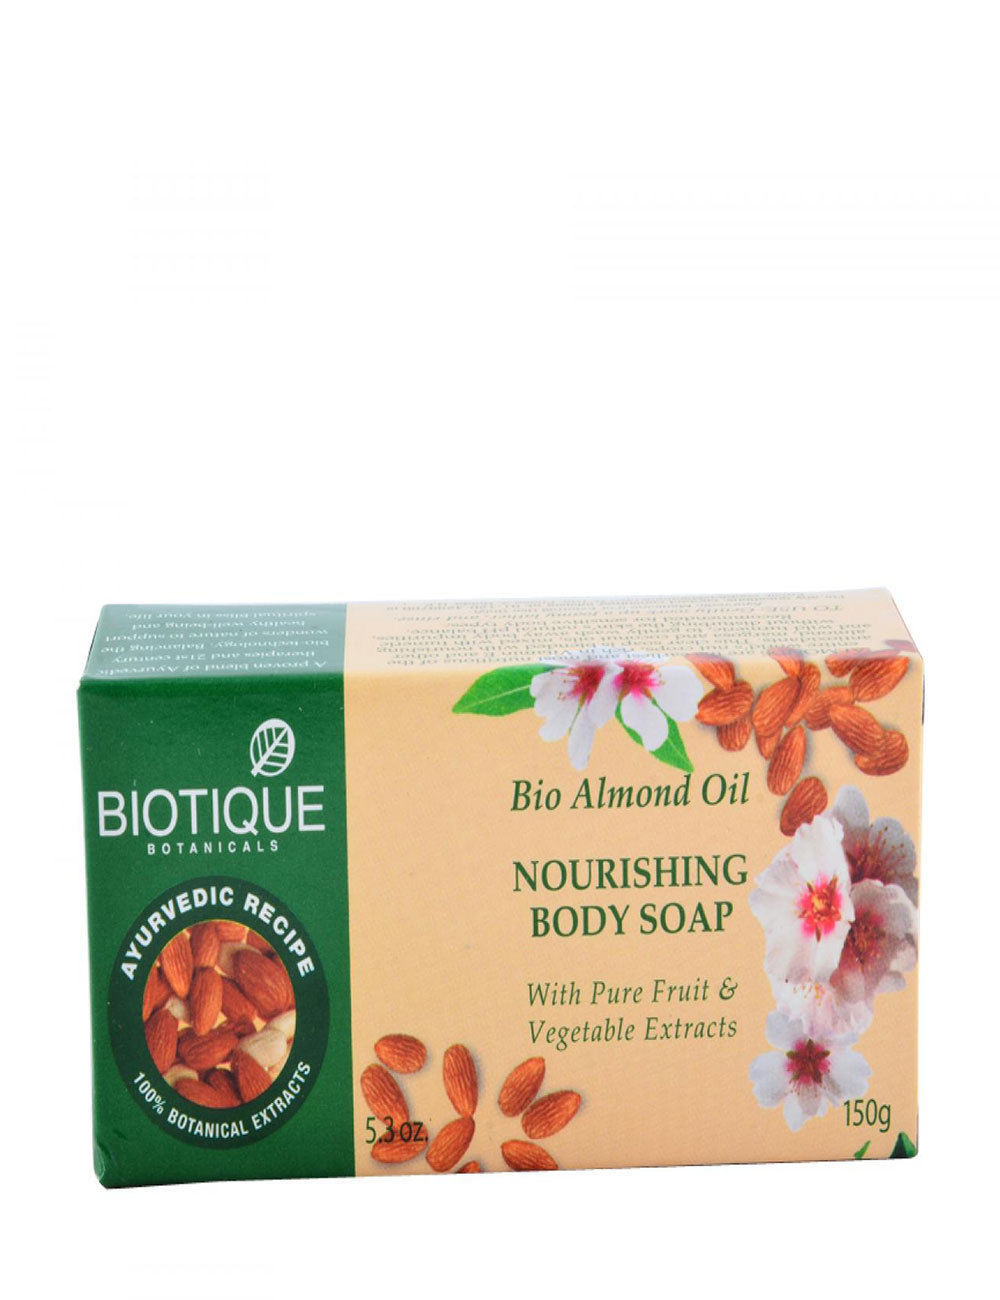 Biotique Bio Almond Nourishing Body Soap With Pure Fruit & Vegetable Extracts